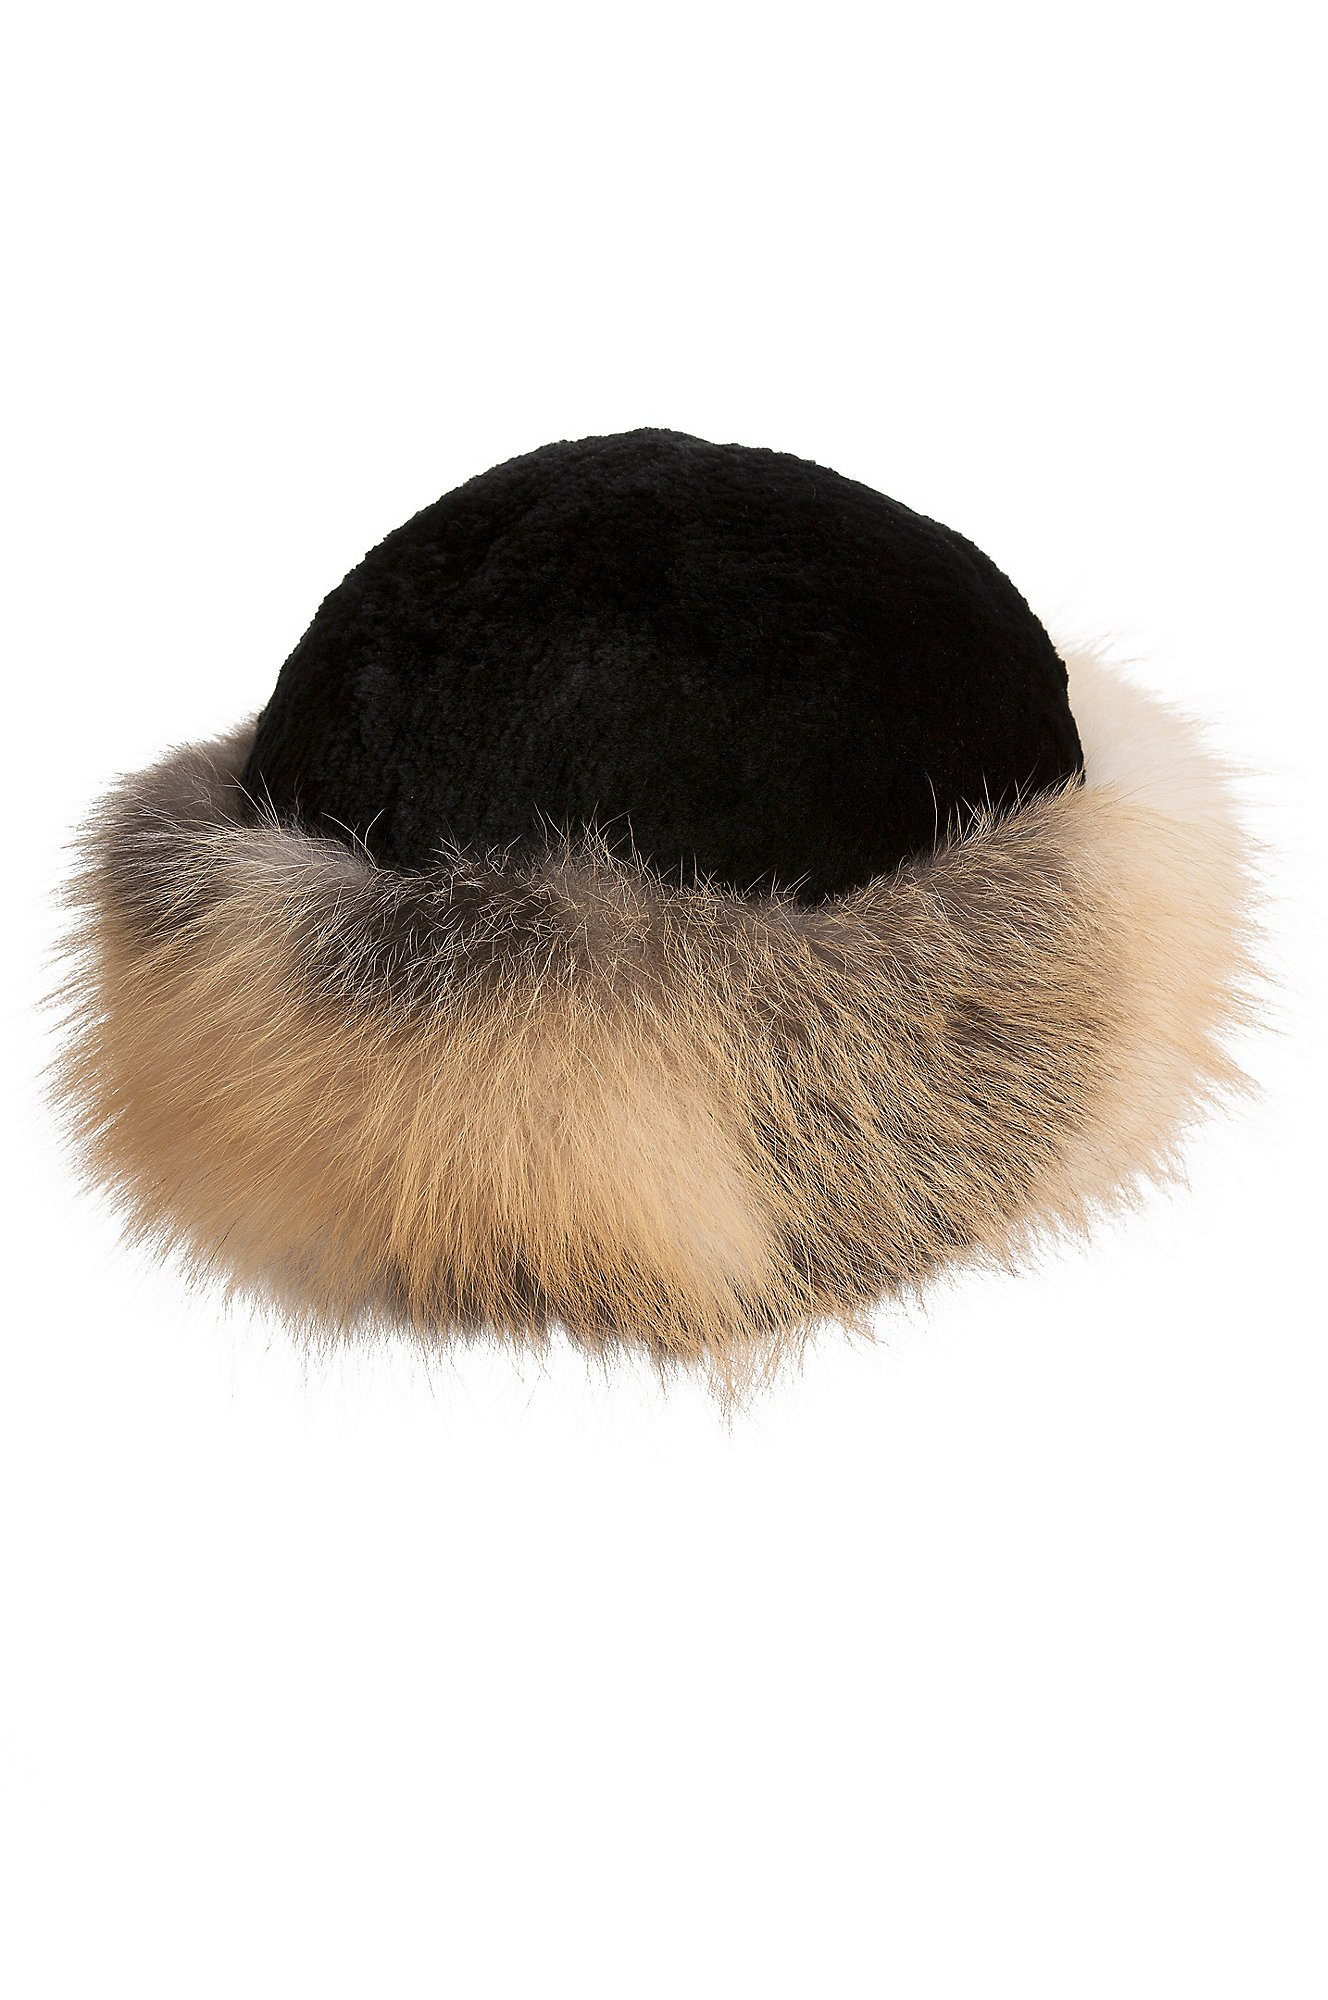 Sheared Beaver Fur Cossack Hat with Fox Fur Trim by Overland Sheepskin Co